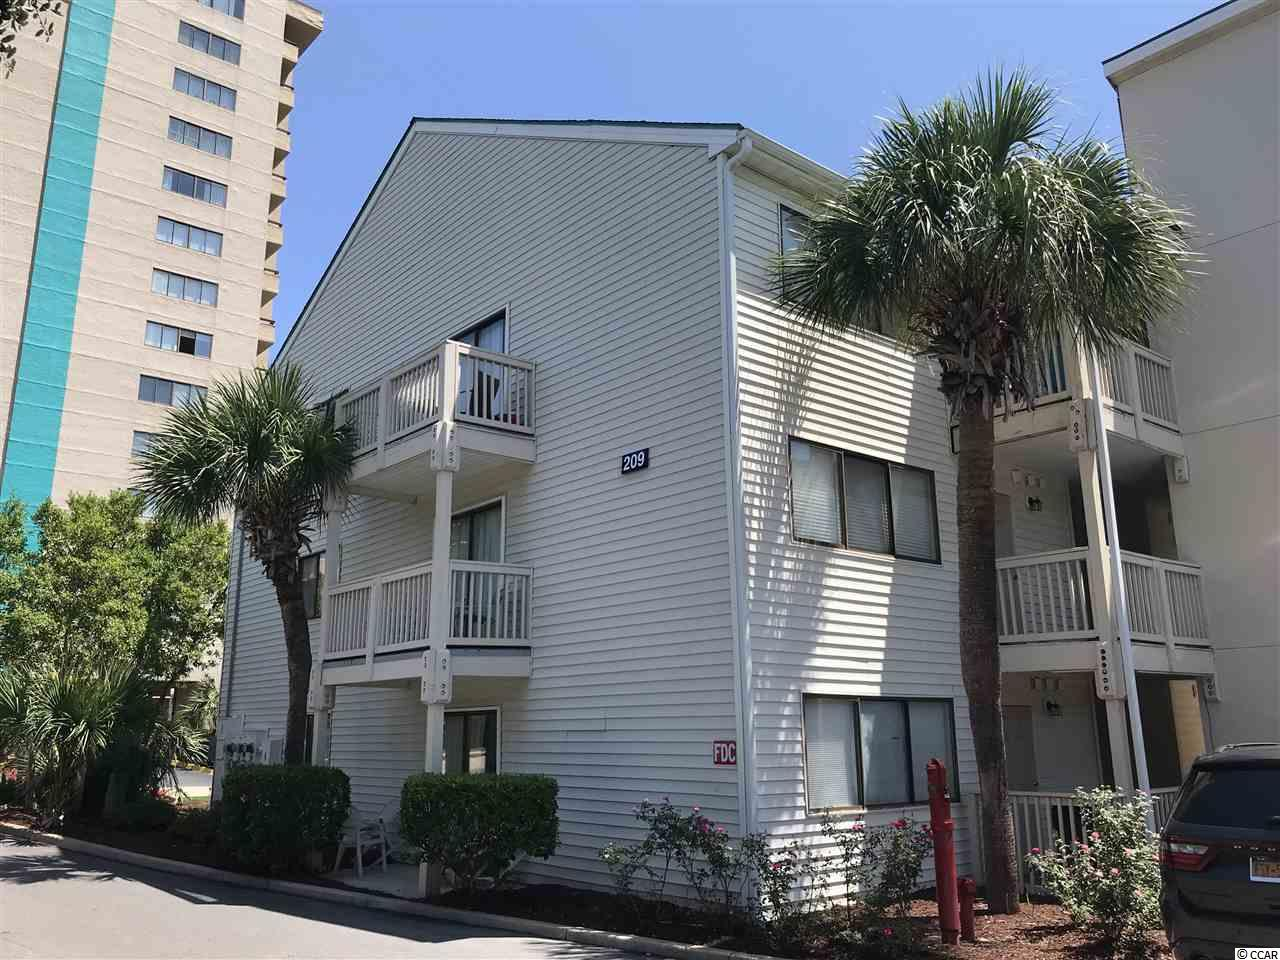 Myrtle Beach Homes for Sale -  Investment,  209 75th Ave North 5308-5309